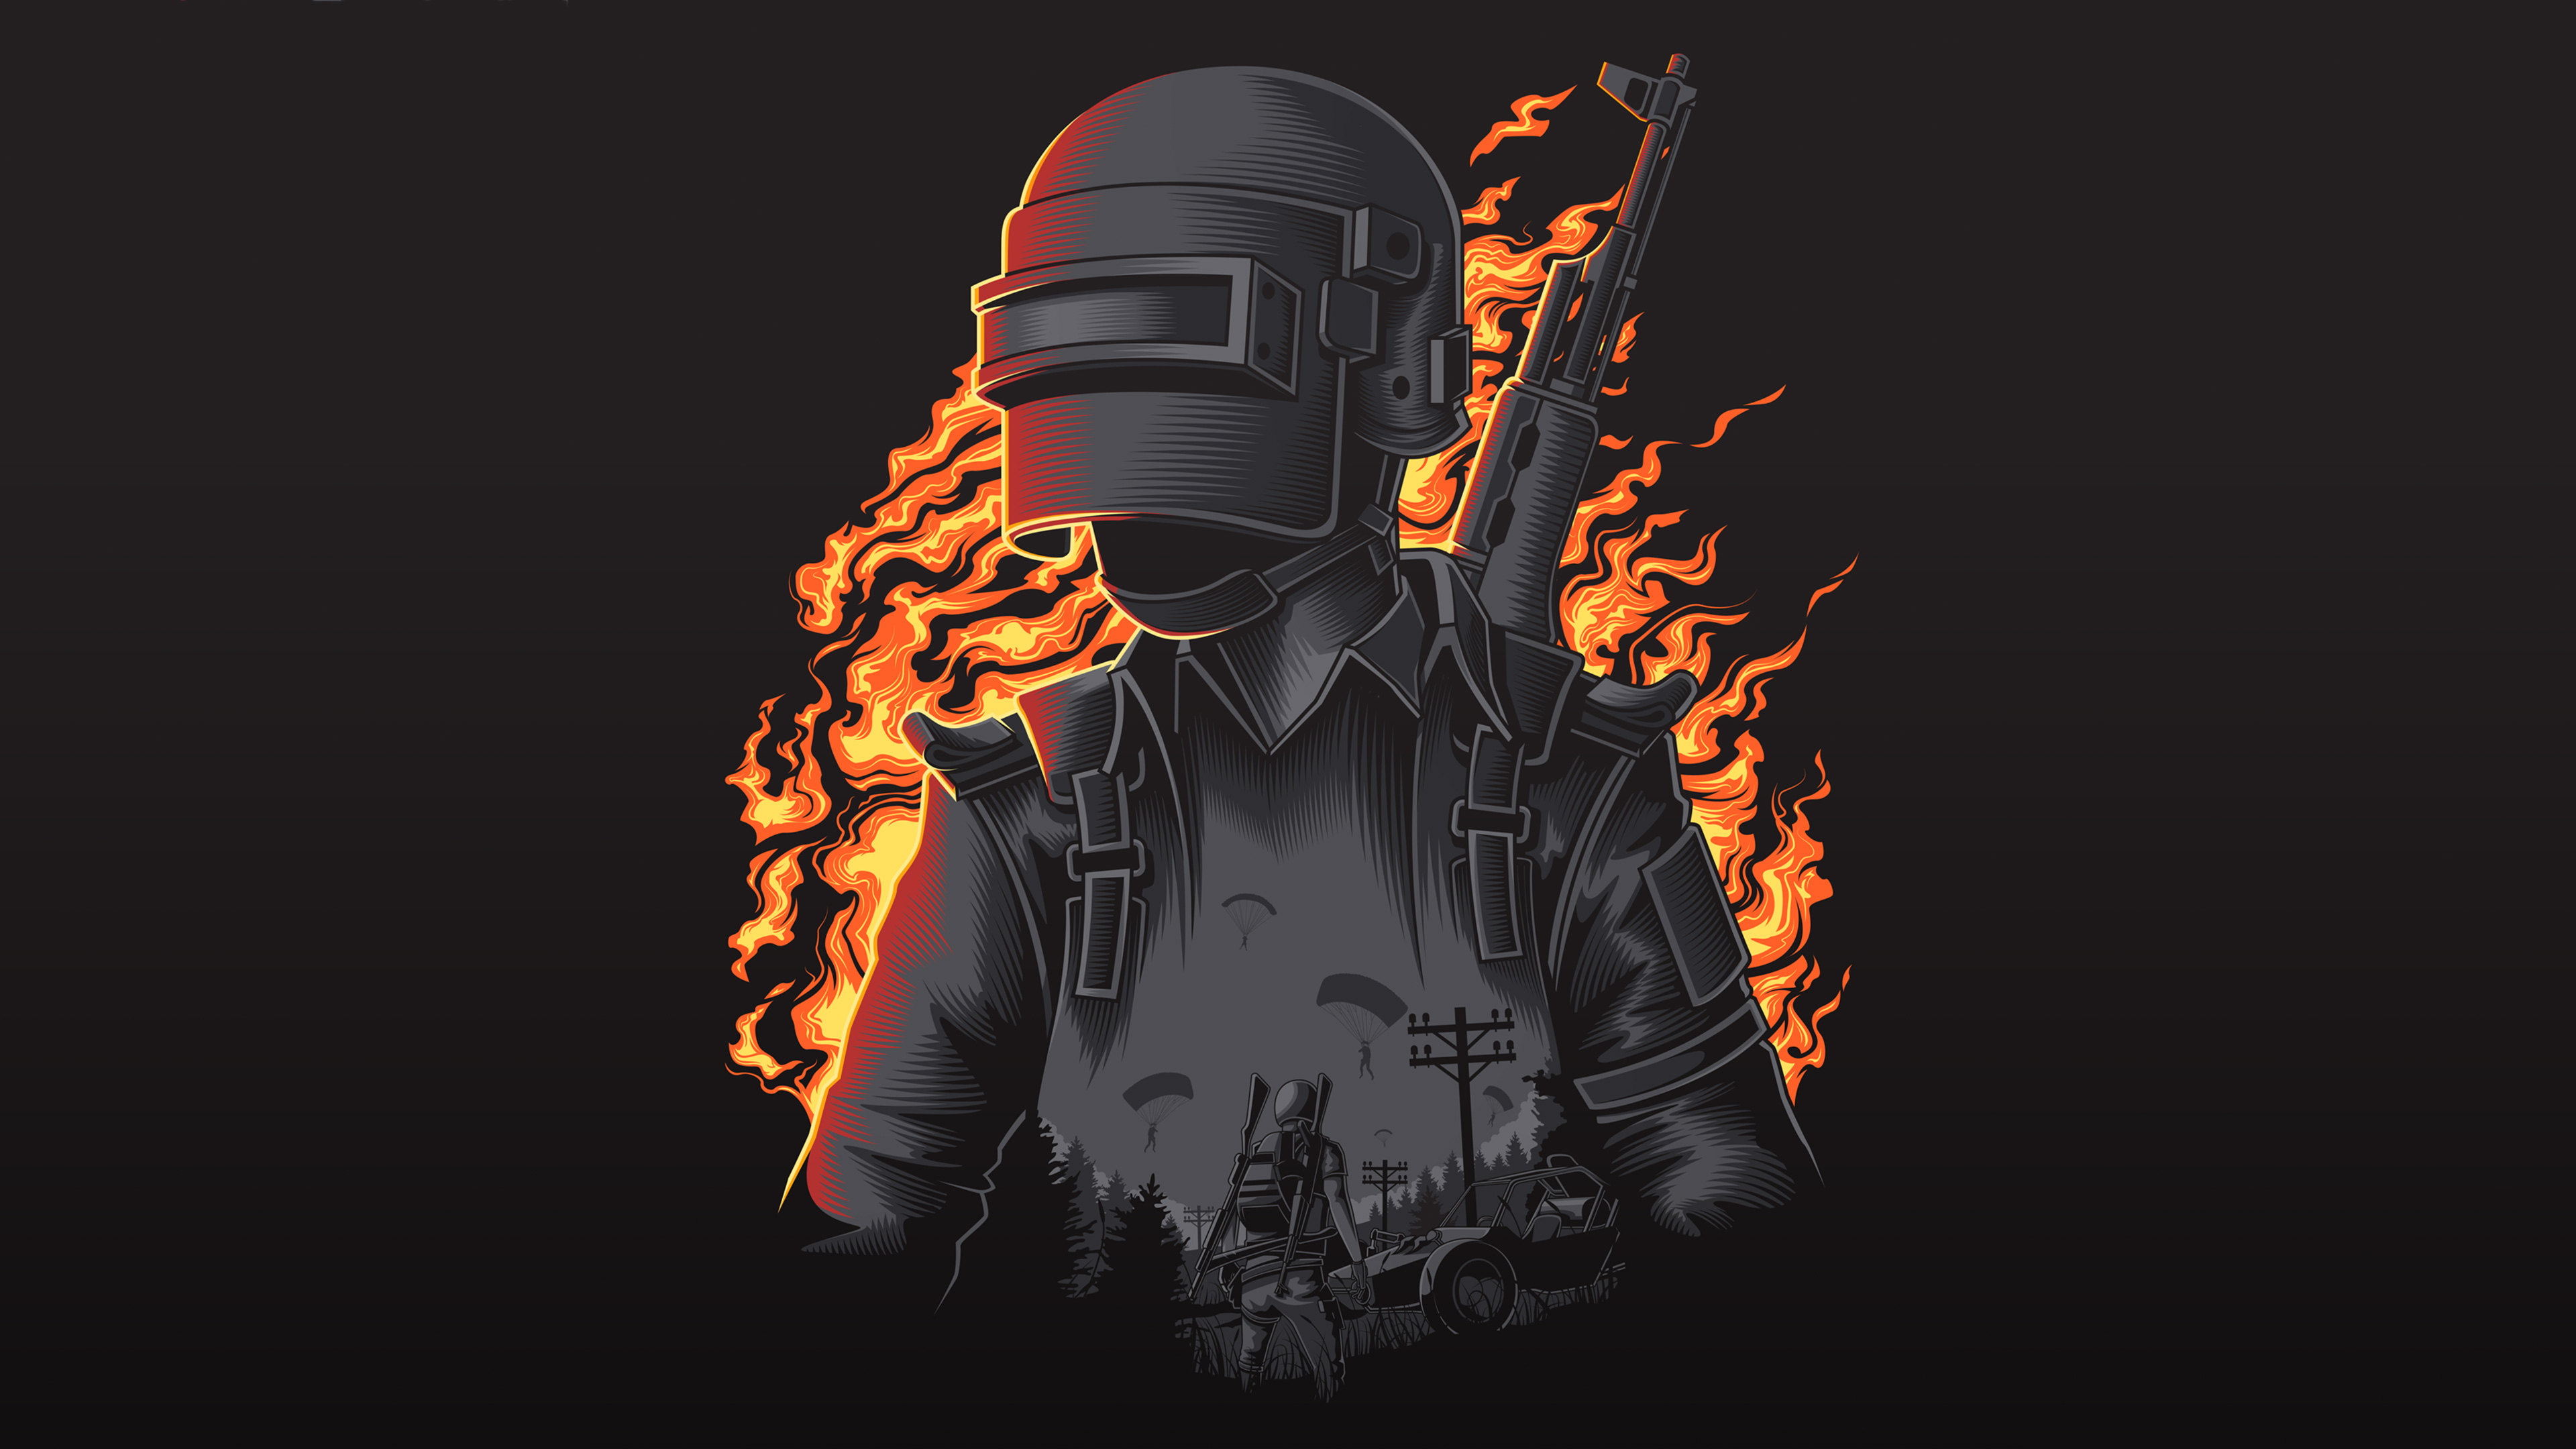 Pubg Game Hd Wallpaper Download: Pubg Illustration 4k, HD Games, 4k Wallpapers, Images